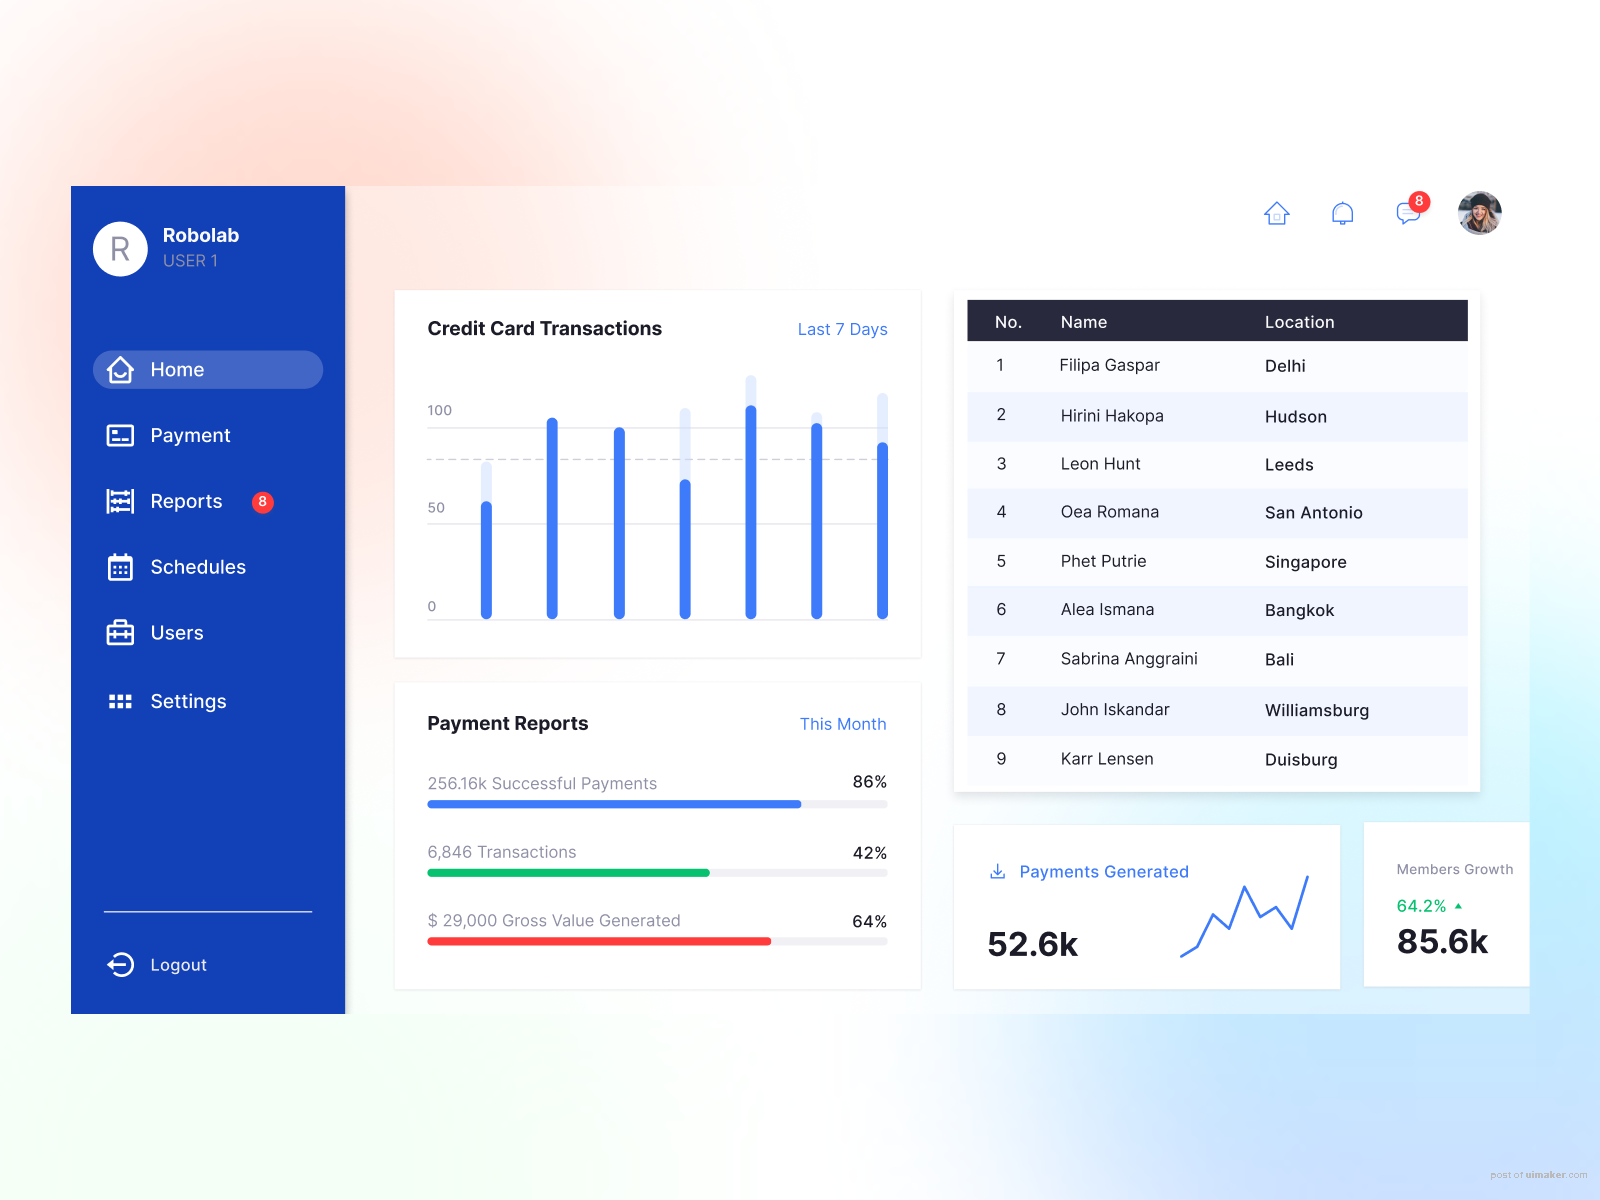 Dashboard UI For Payment Services